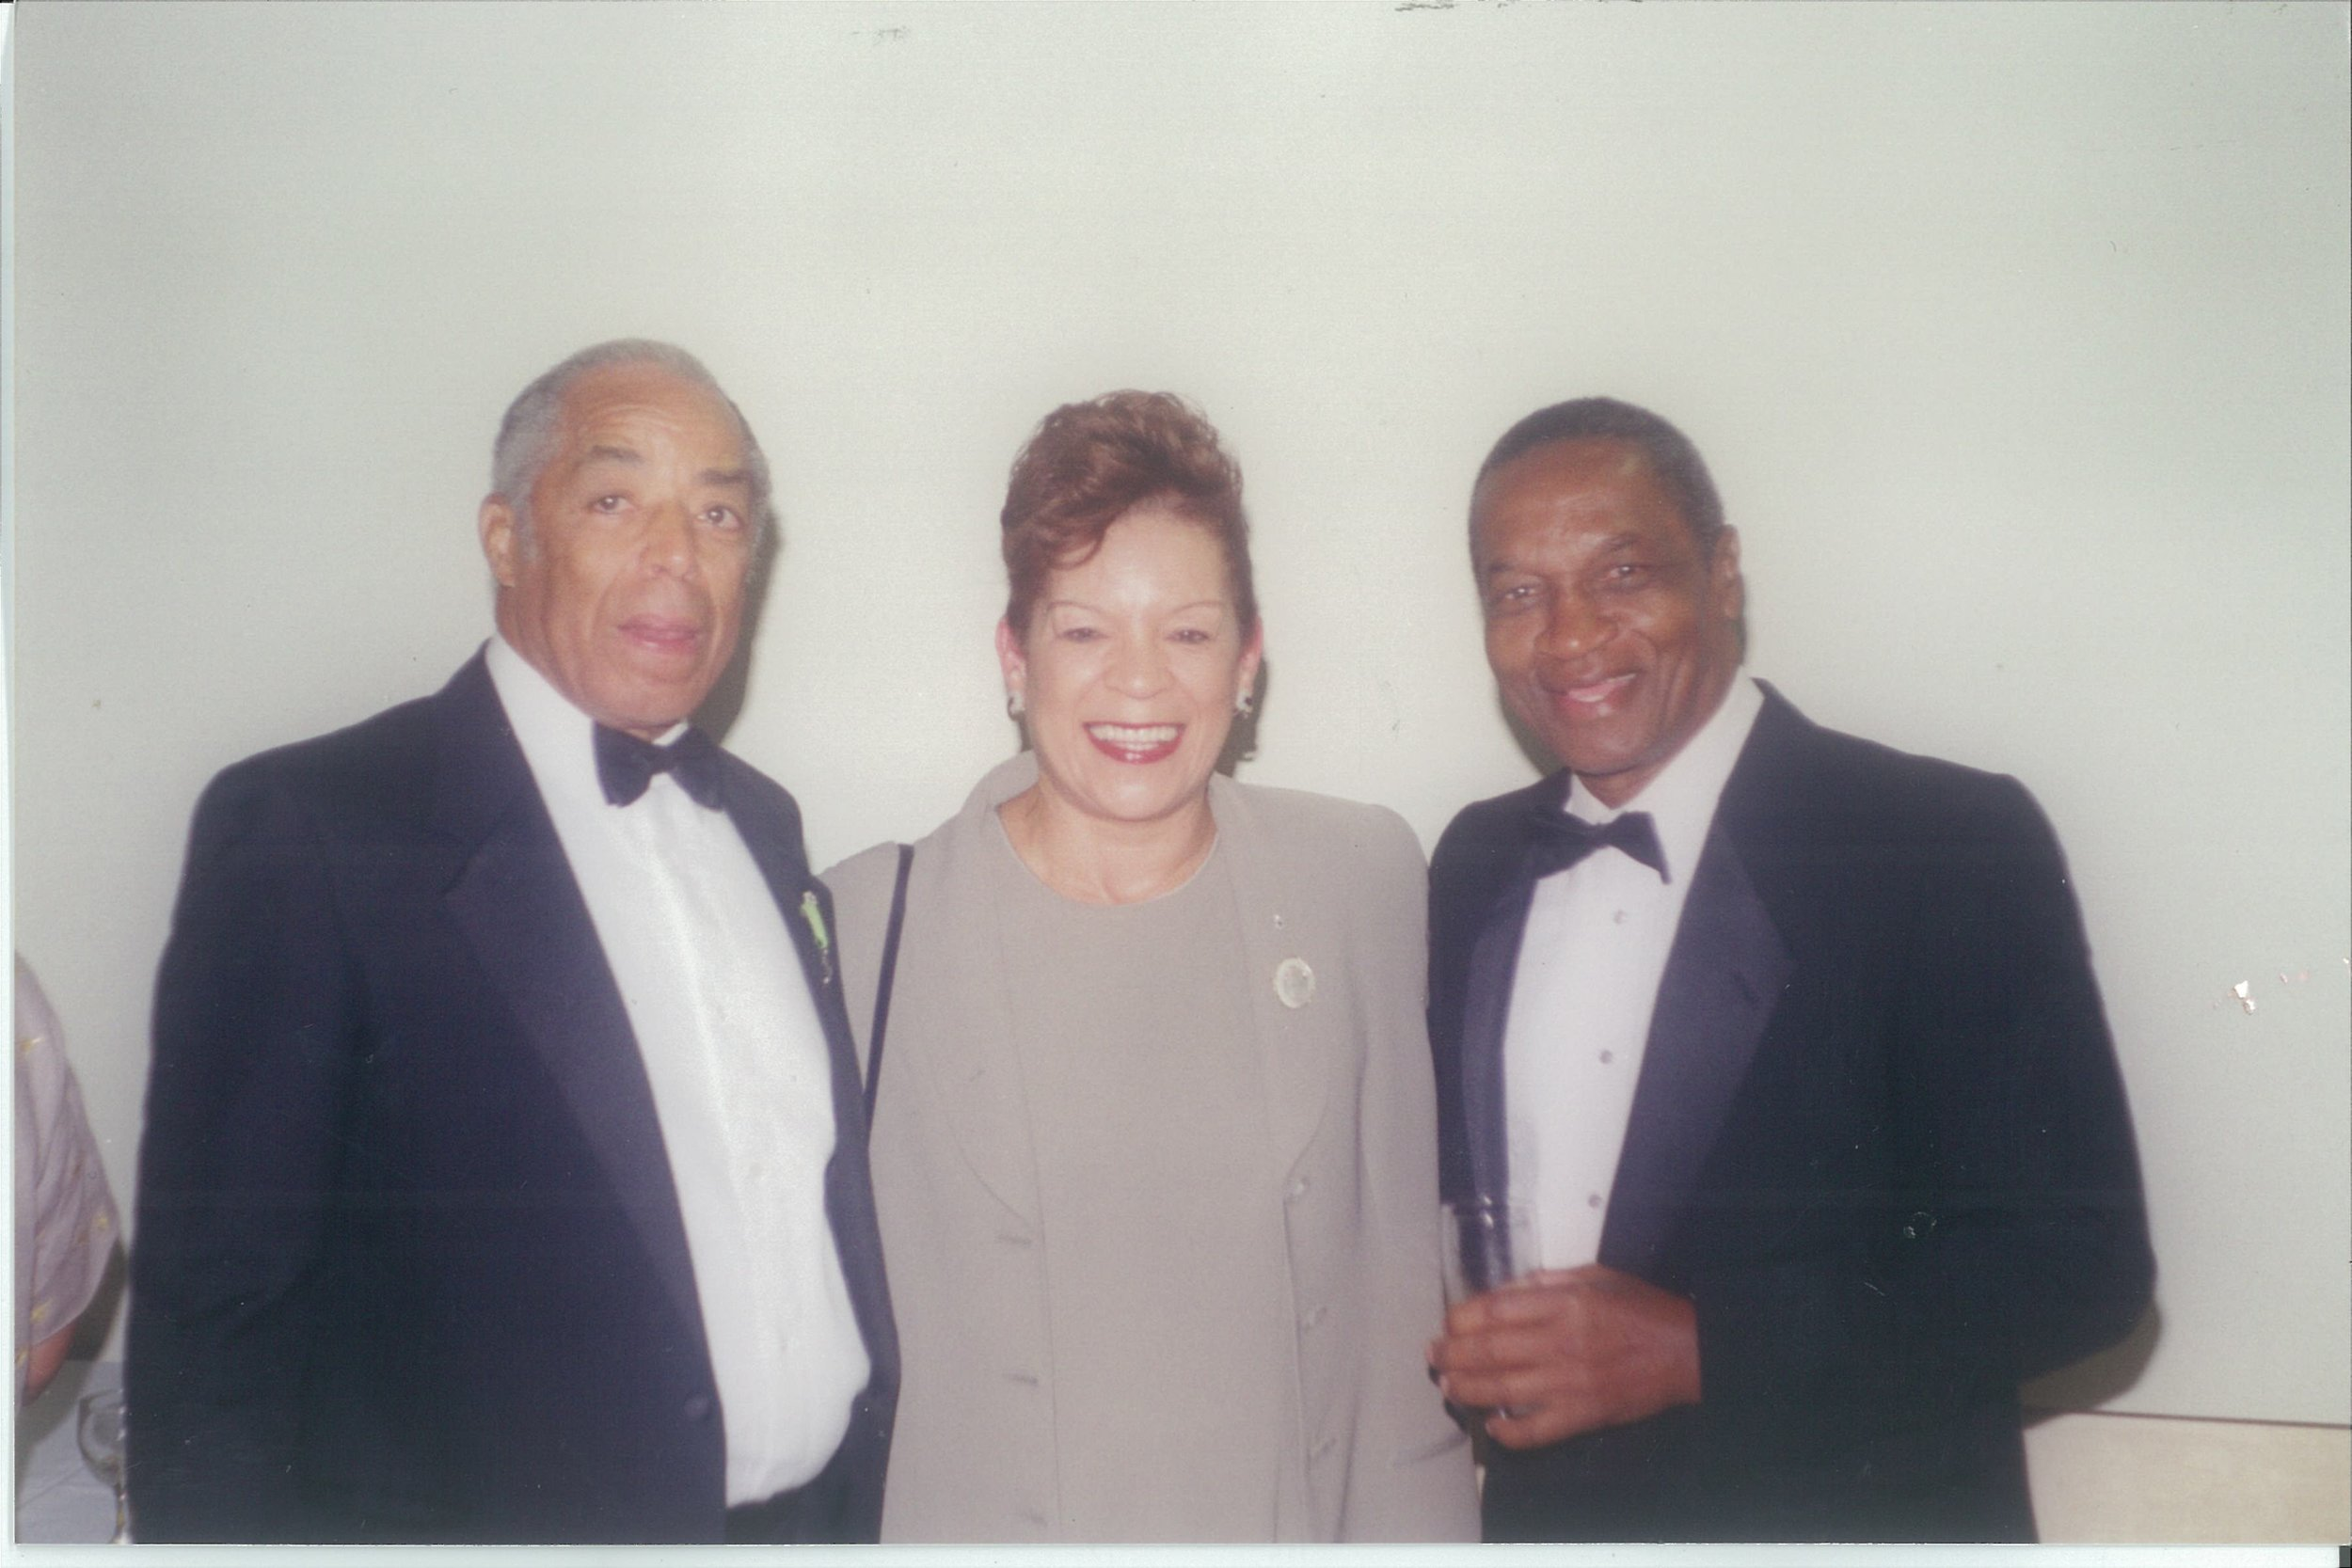 Bromley Armstrong with the JCA's first president Roy Williams (r) and the late Bev Mascoll